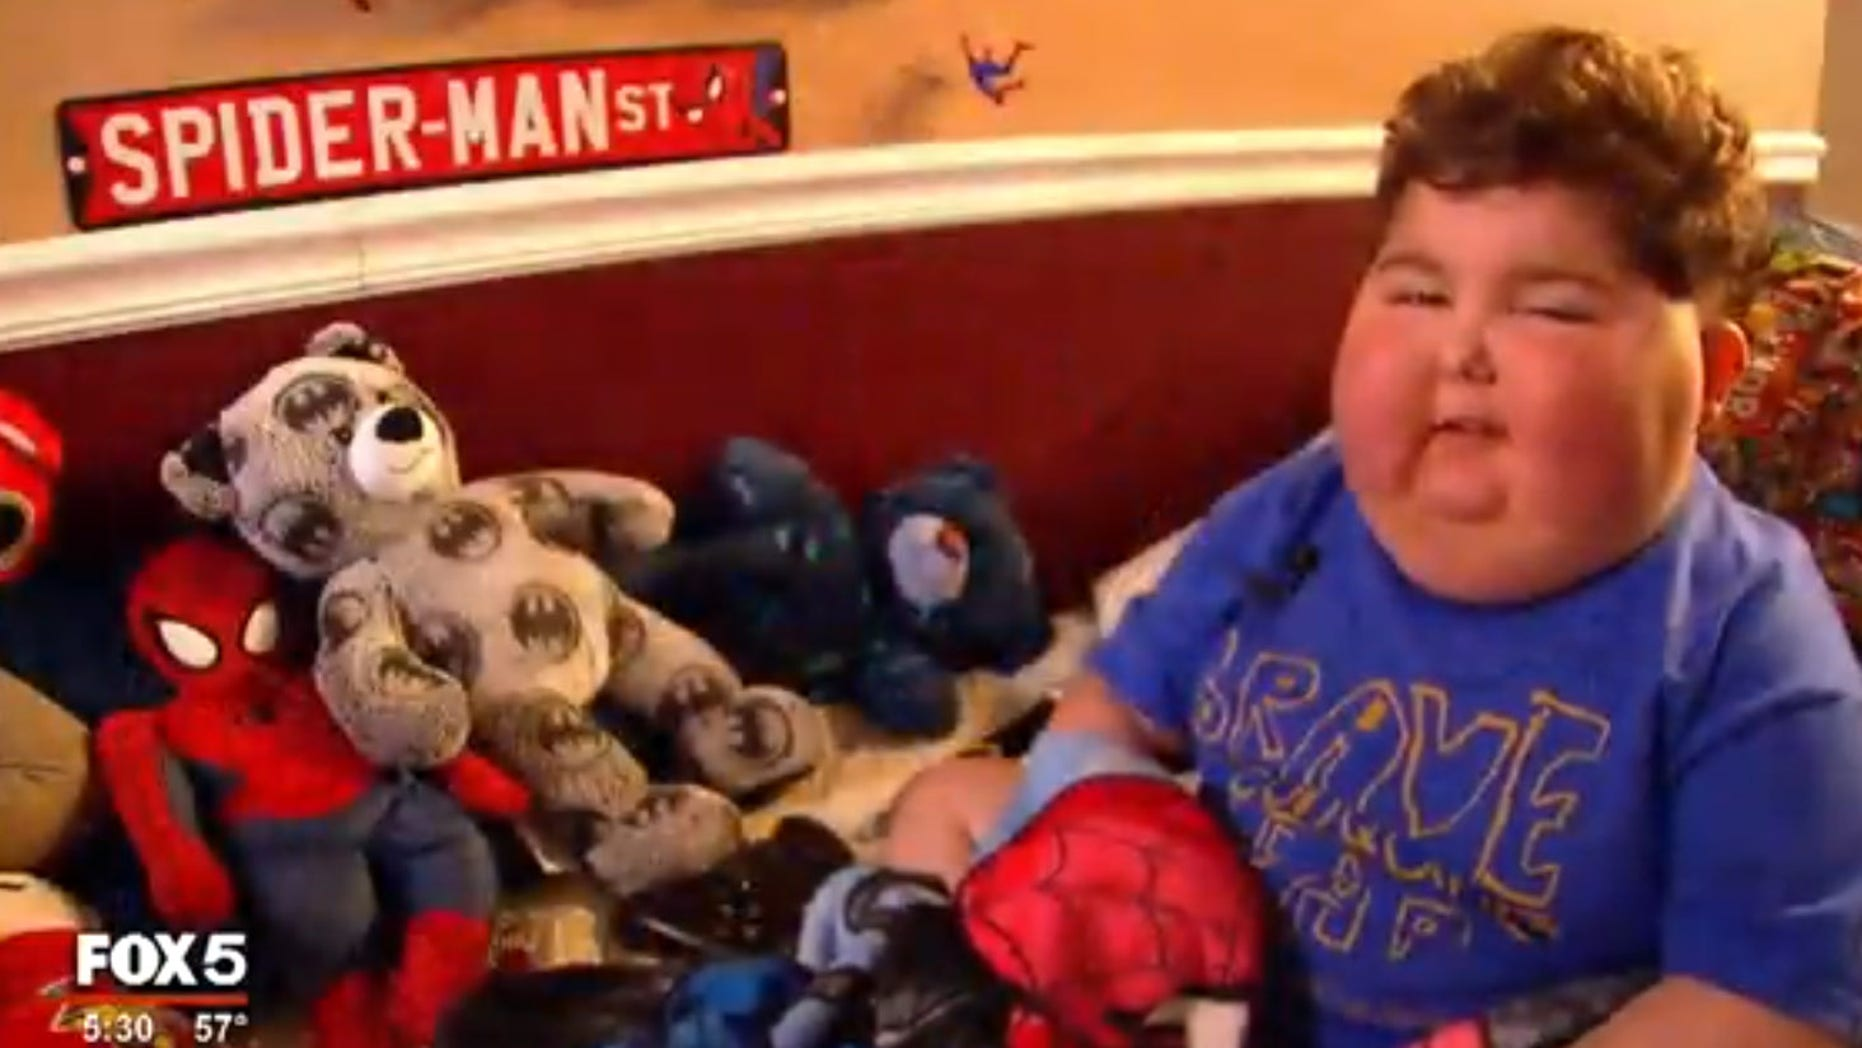 Brantley Dobbs was diagnosed with an inoperable brain tumor about 20 months ago, and has a Christmas wish to receive ornaments from all around the world.